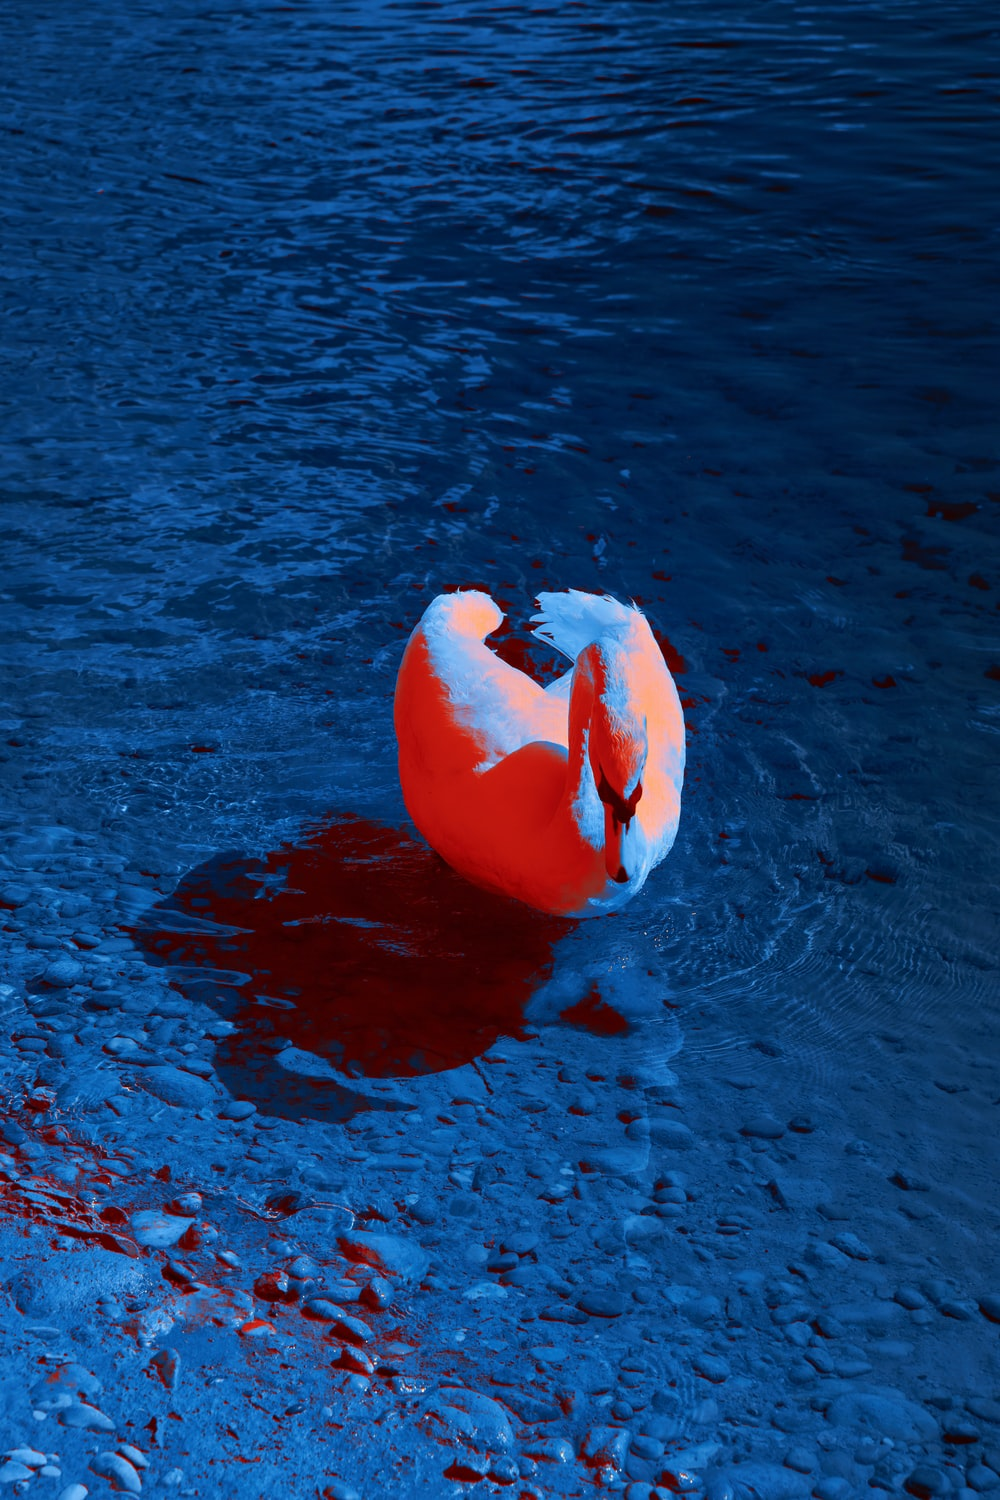 white and pink swan on water during daytime